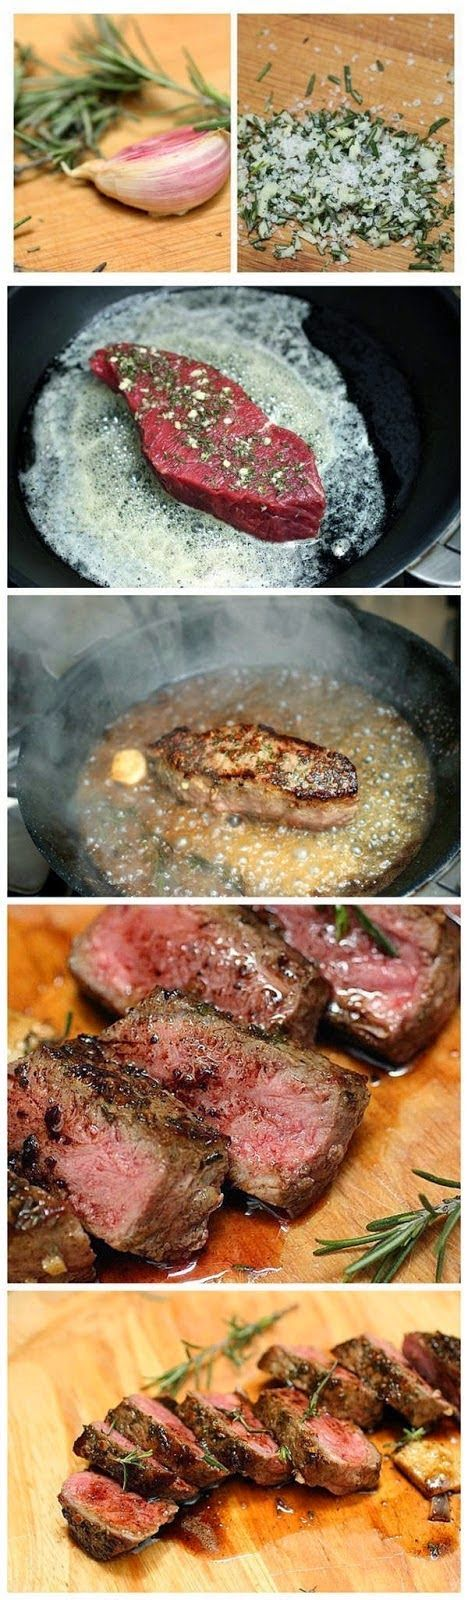 Rosemary Garlic Butter Steaks. With a mortar and pestle, make a paste with 3 cloves garlic, 2 T rosemary, 1 t salt. Rub paste over both sides of steak. Add 3 T butter, 1 T olive oil to a cast iron skillet. Cook 3-4 min and turn. Add splash of red wine and continue to cook. Remove steak when done, continue to reduce contents of skillet until slightly thickened. Pour over steaks.